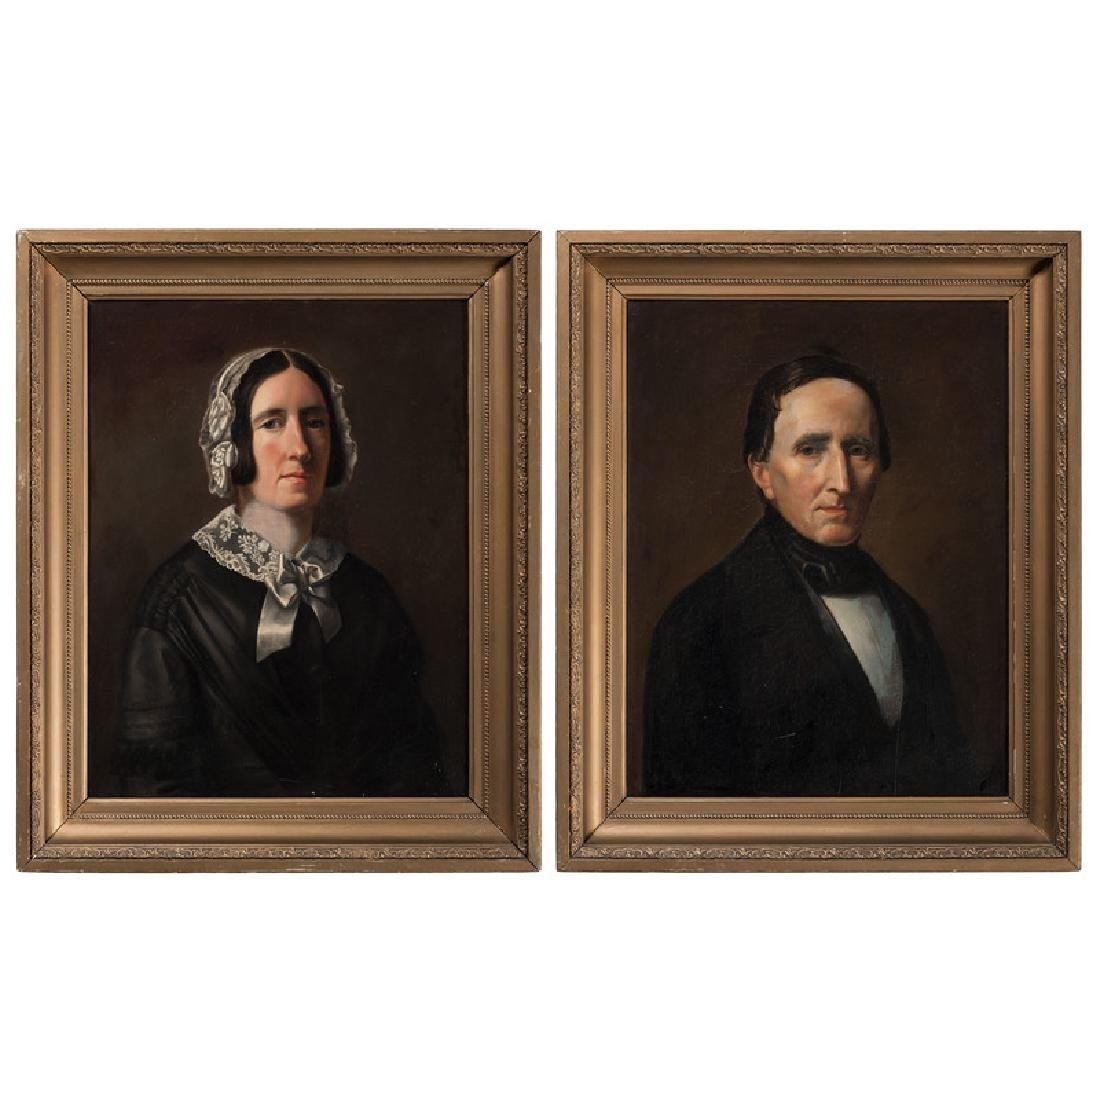 American Portraits of Man and Woman